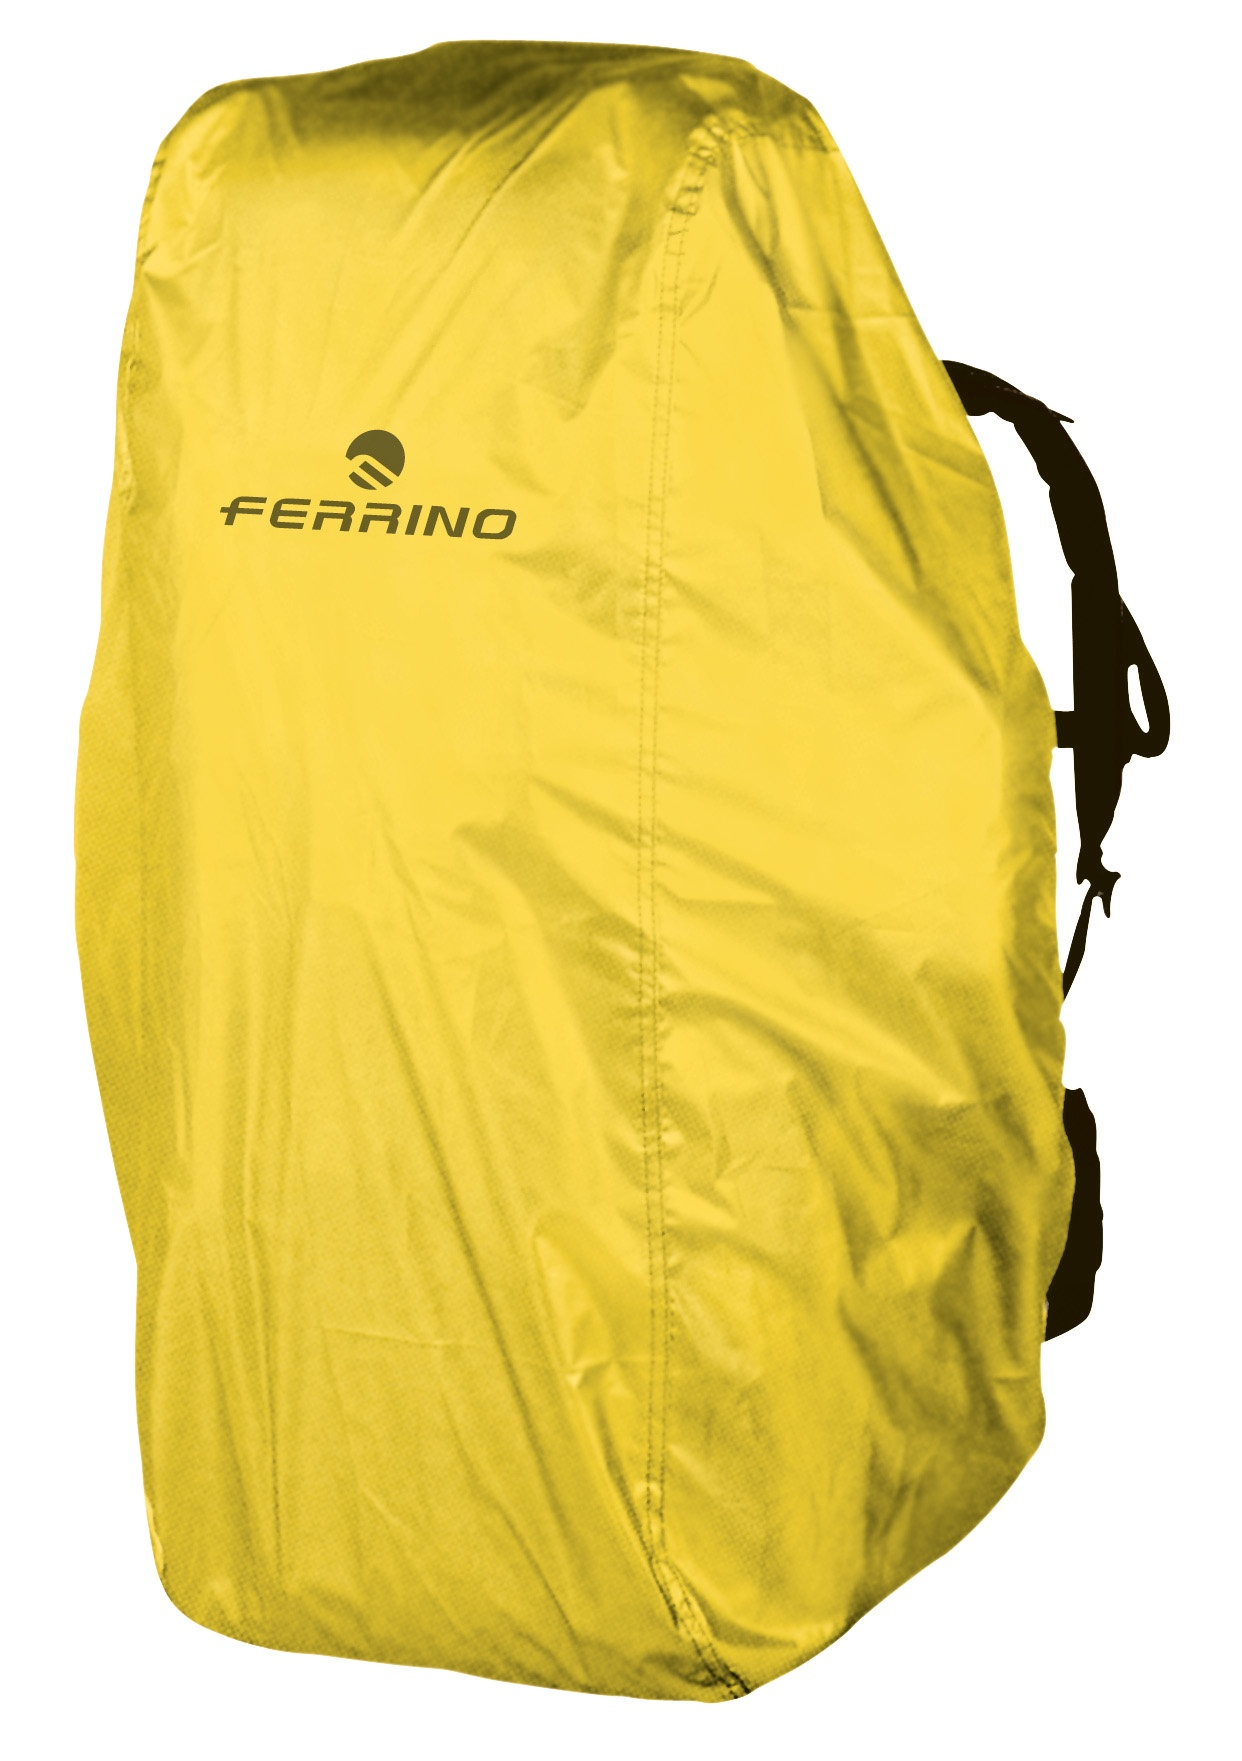 8177768a060 Ferrino backpack rain cover 15-30 litres yellow - Internet-Sport&Casuals